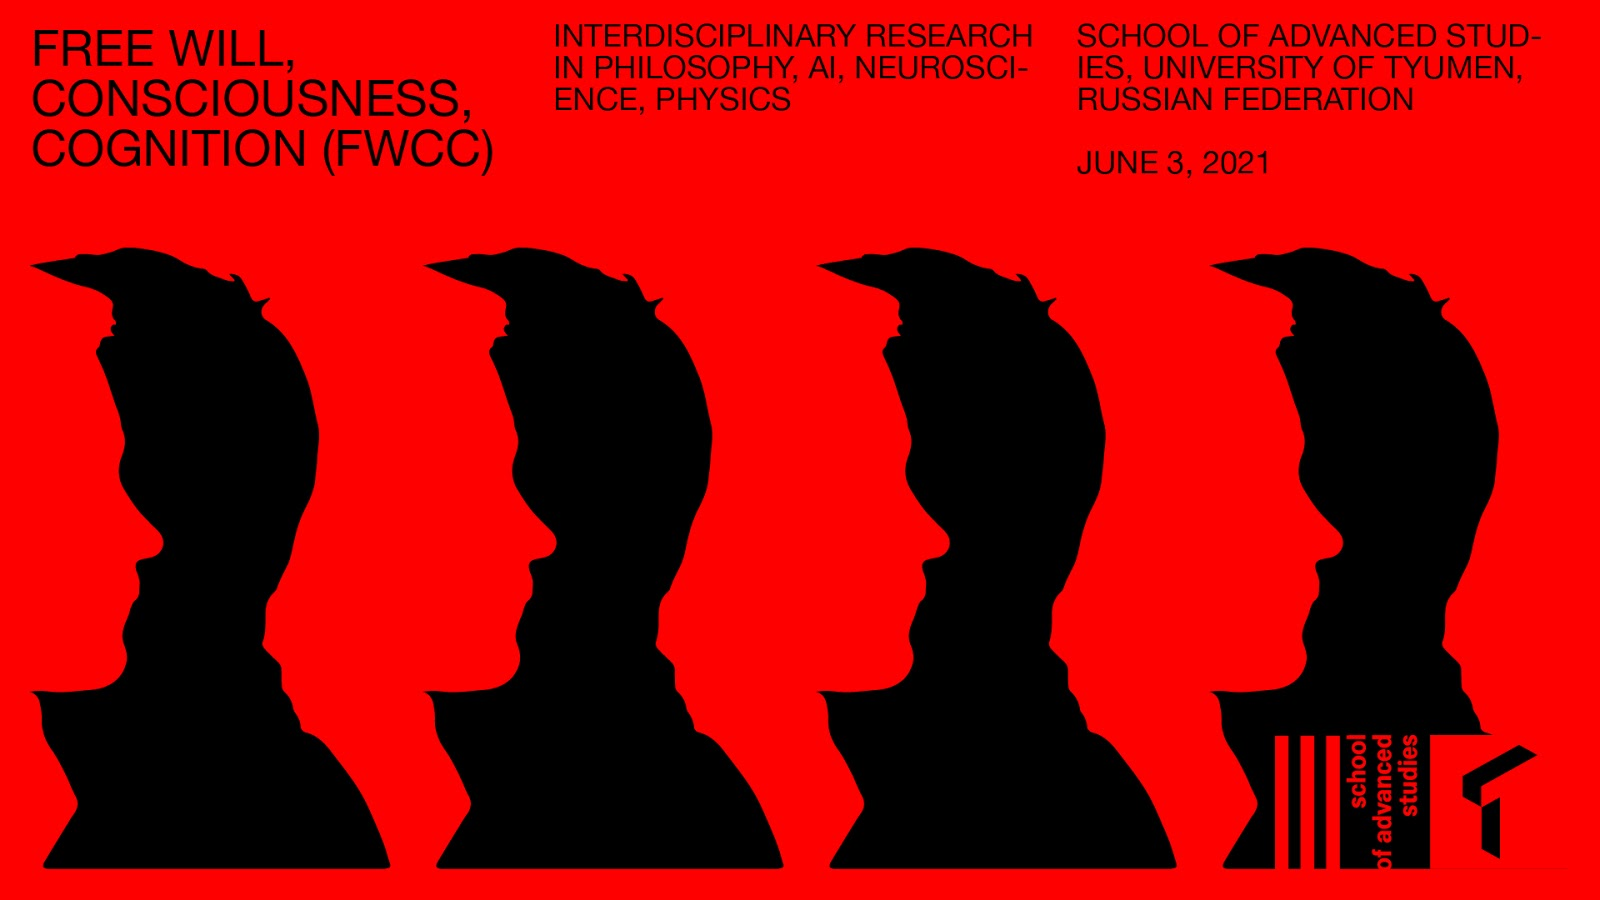 Free will, consciousness, cognition (FWCC): interdisciplinary research in philosophy, AI, neuroscience, physics – June 3, 2021